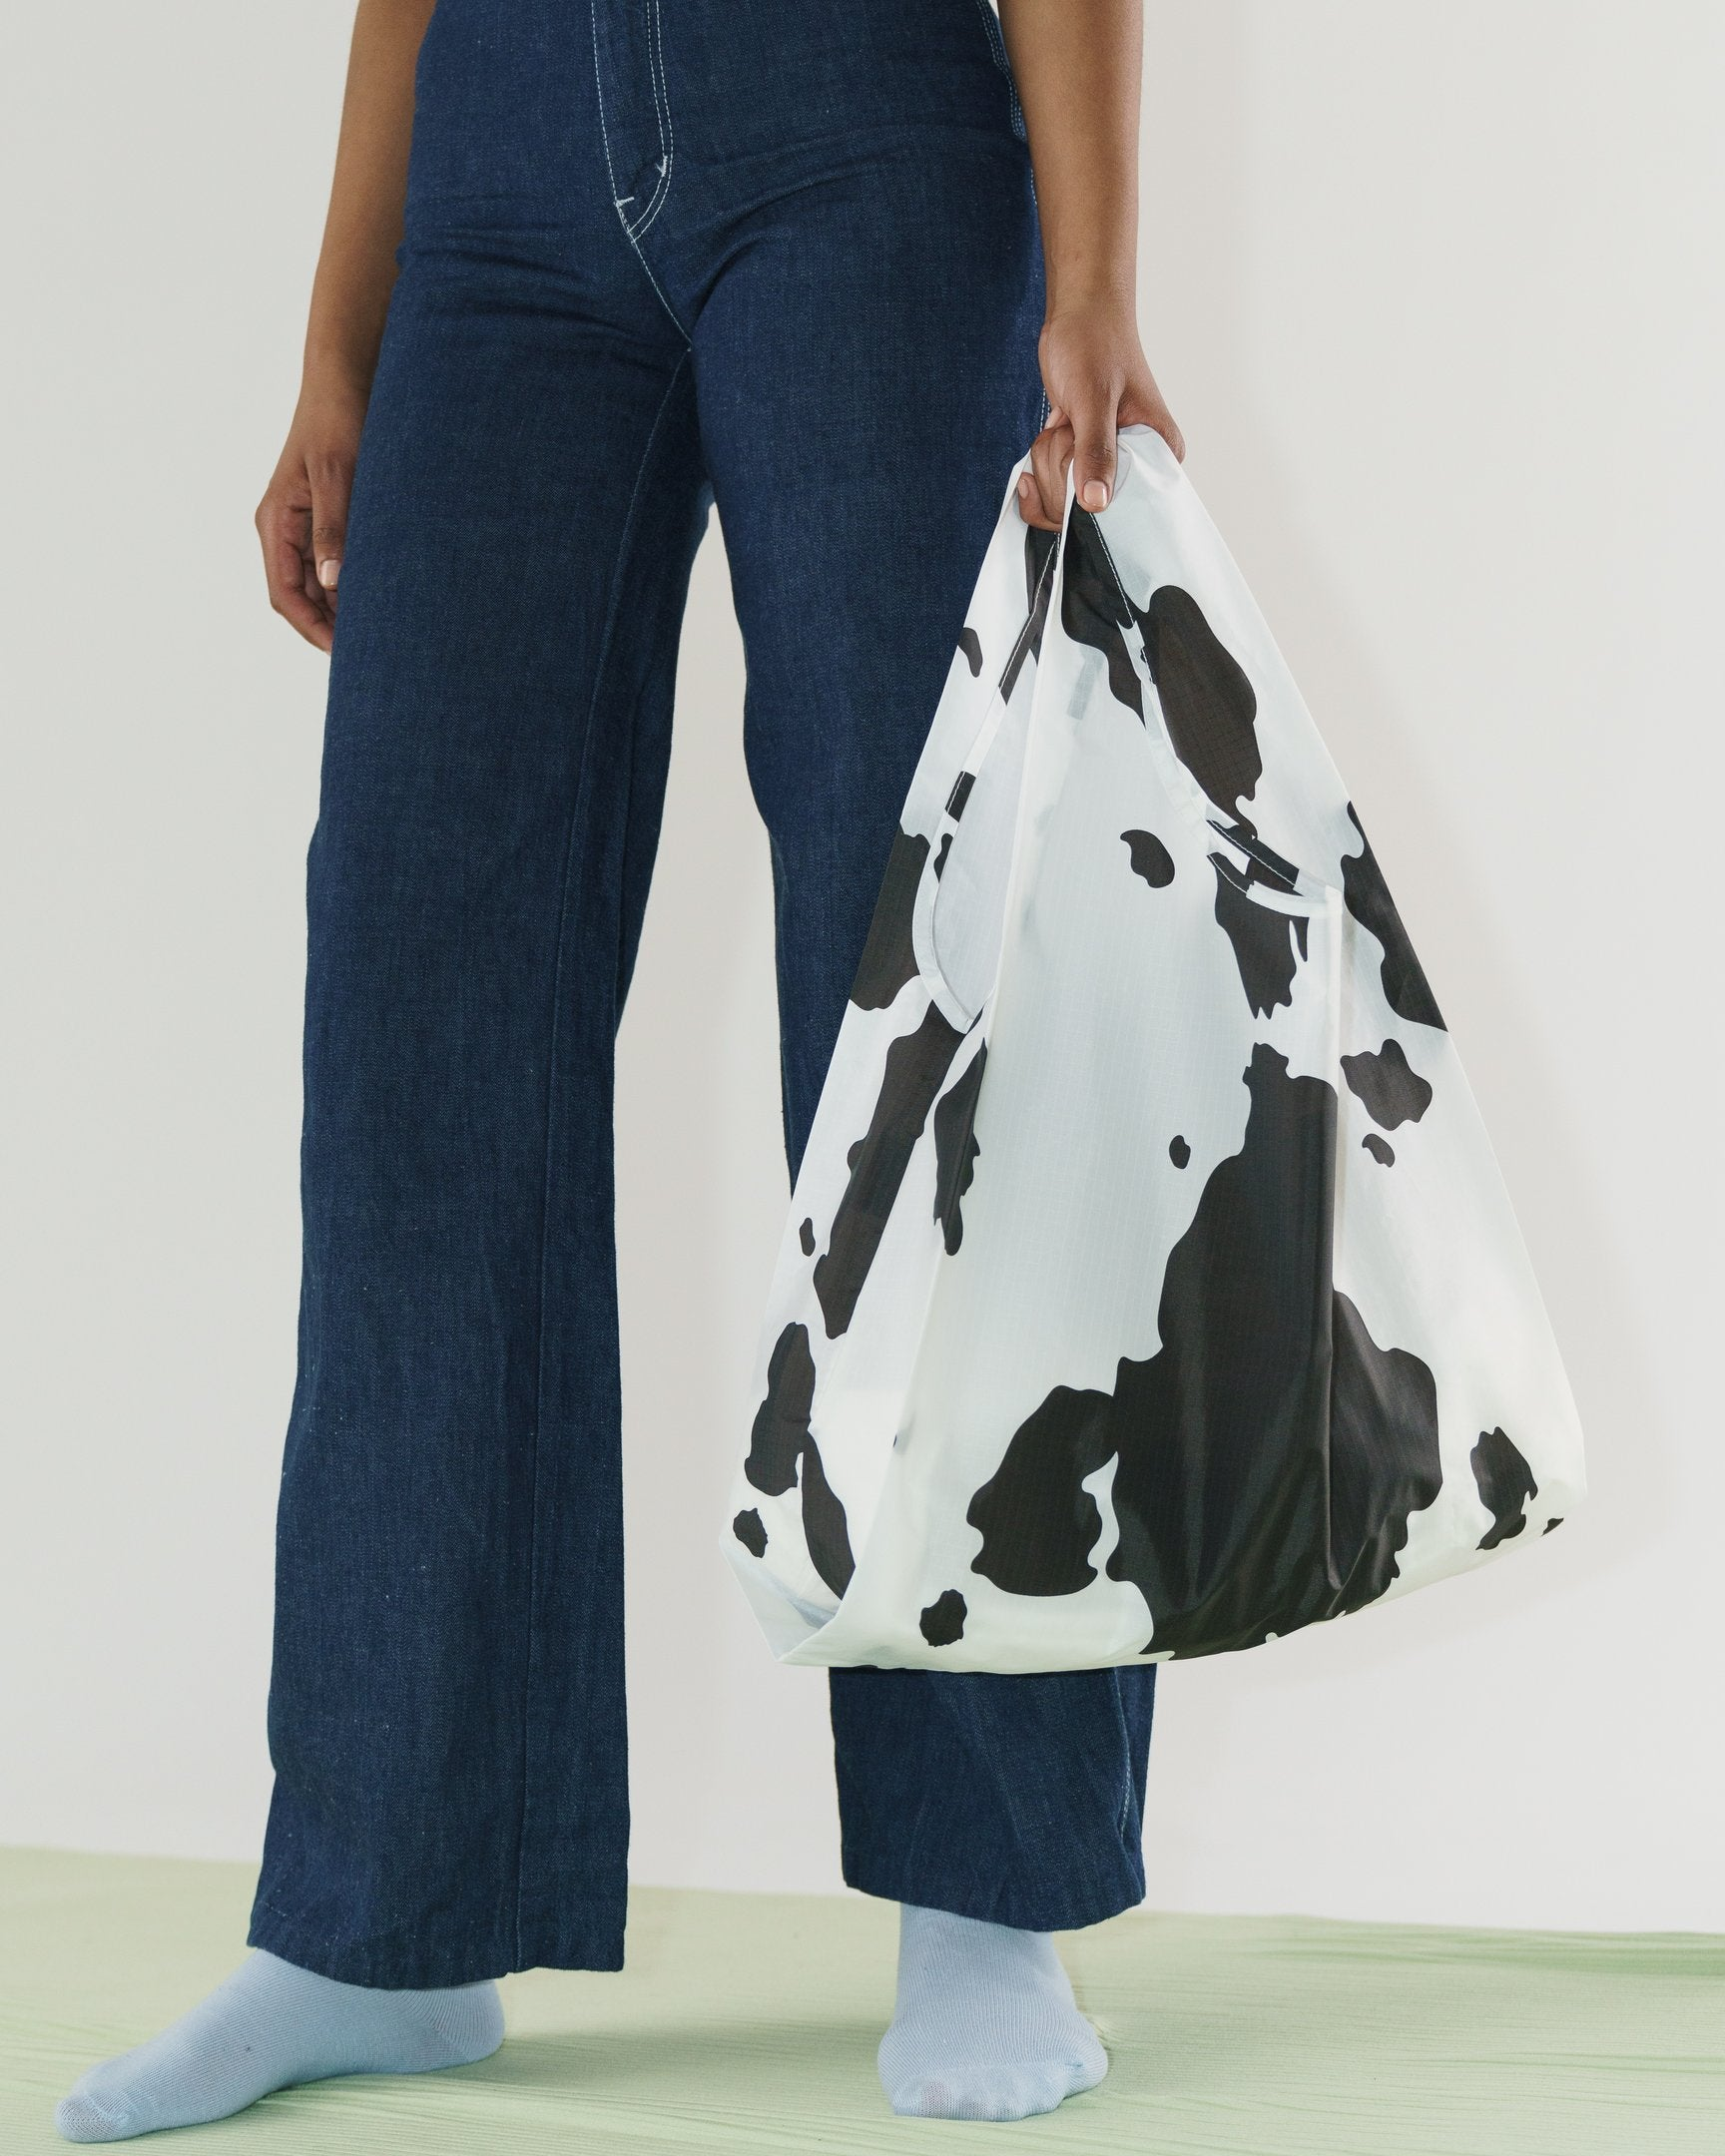 Standard Baggu (Black and White Cow)